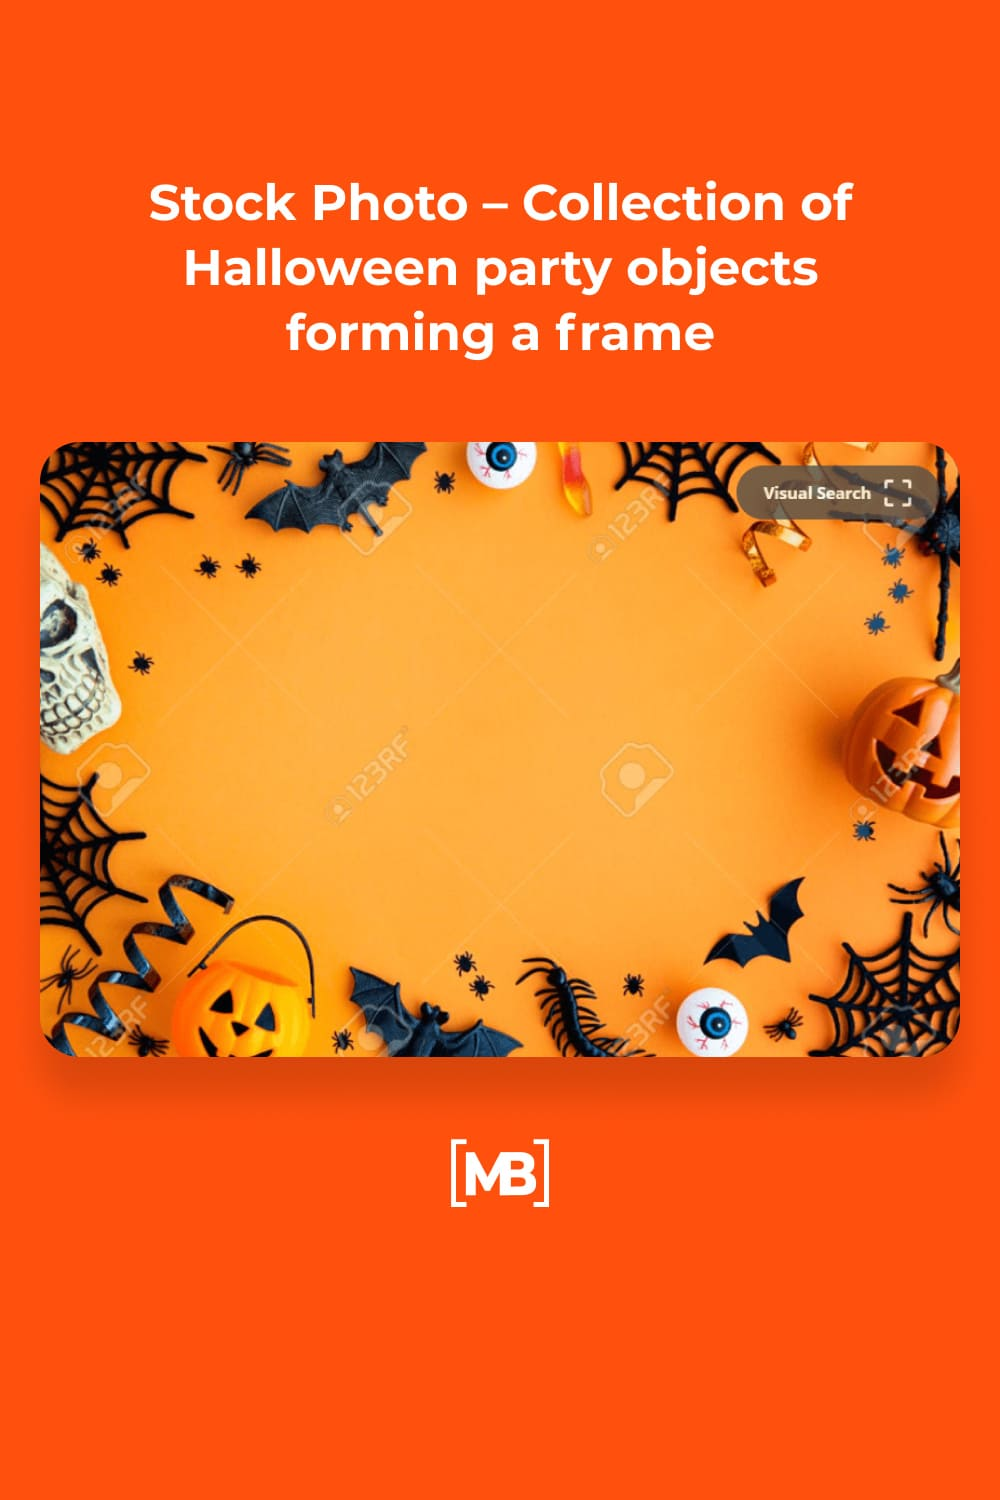 10 Stock Photo – Collection of Halloween party objects forming a frame